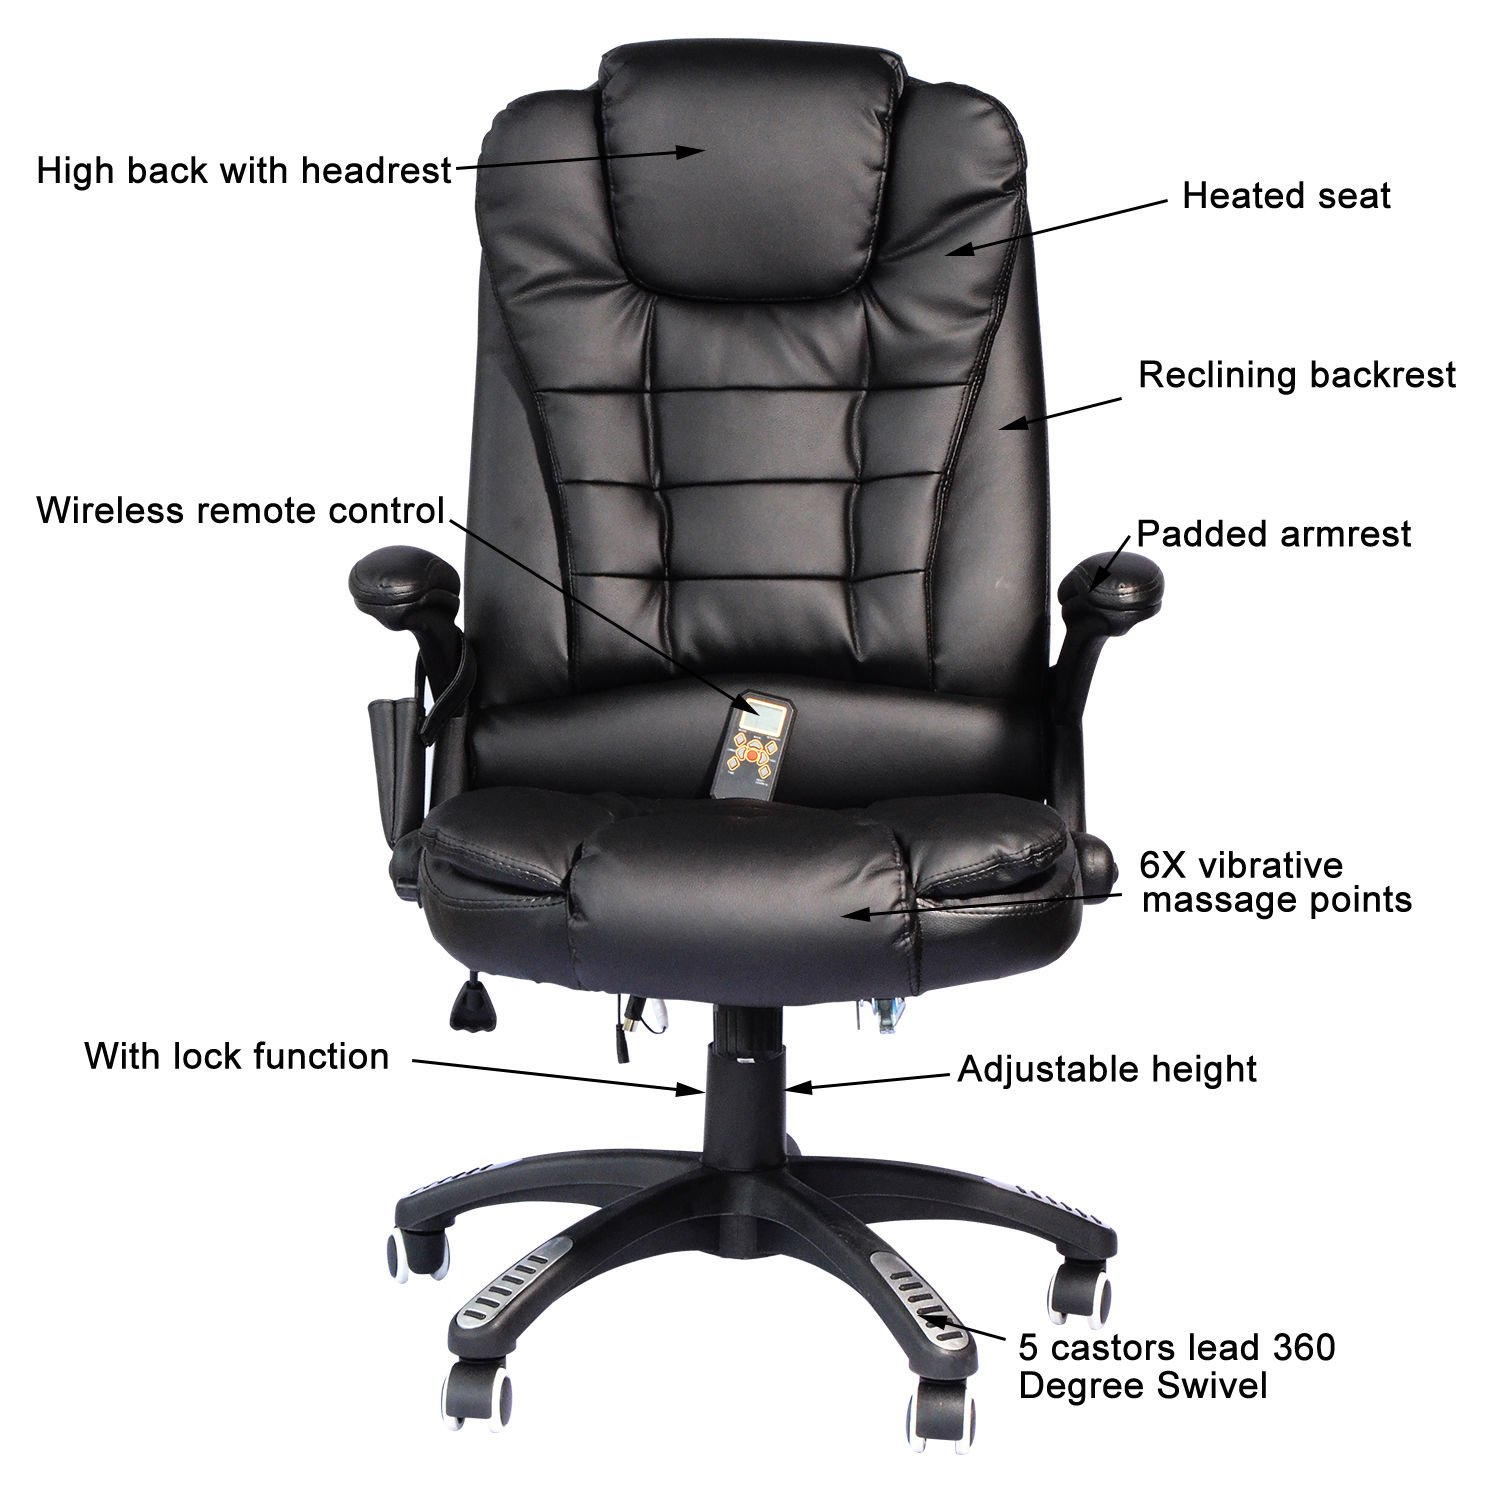 Amazon Hom High Back Executive Ergonomic PU Leather Heated